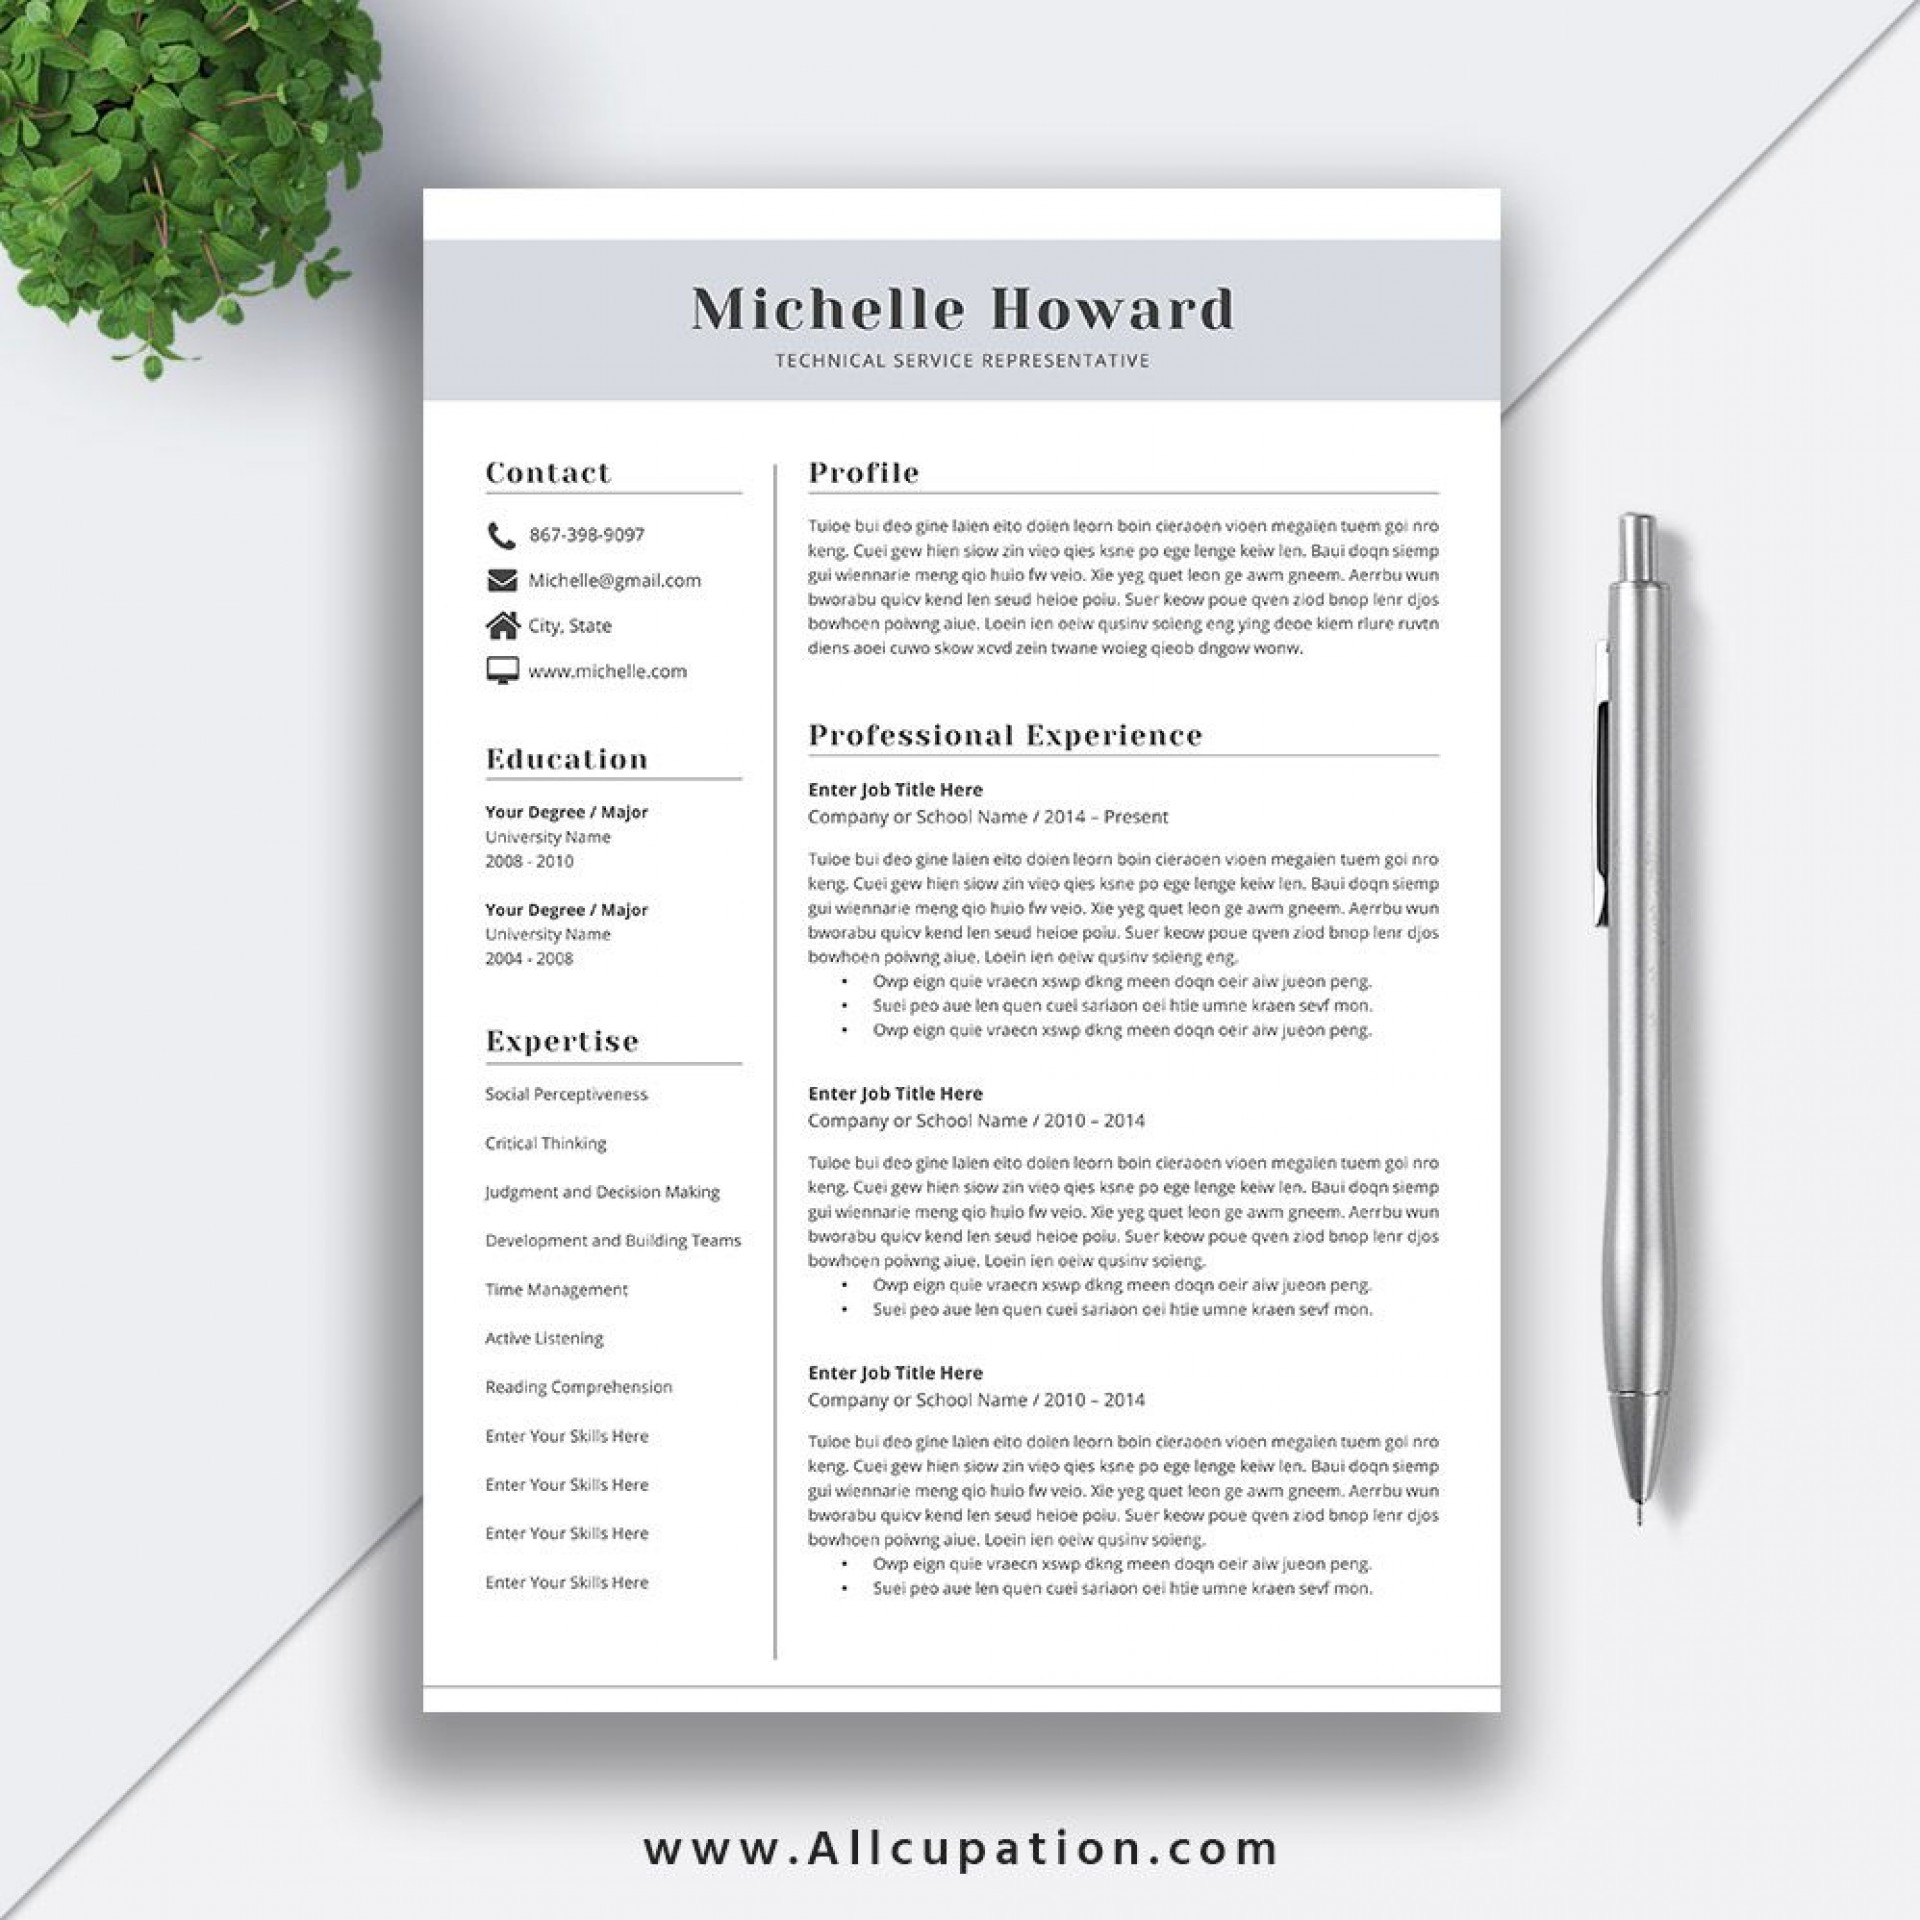 009 Awesome Best Resume Template Word High Resolution  Format Free Download Wordpres1920